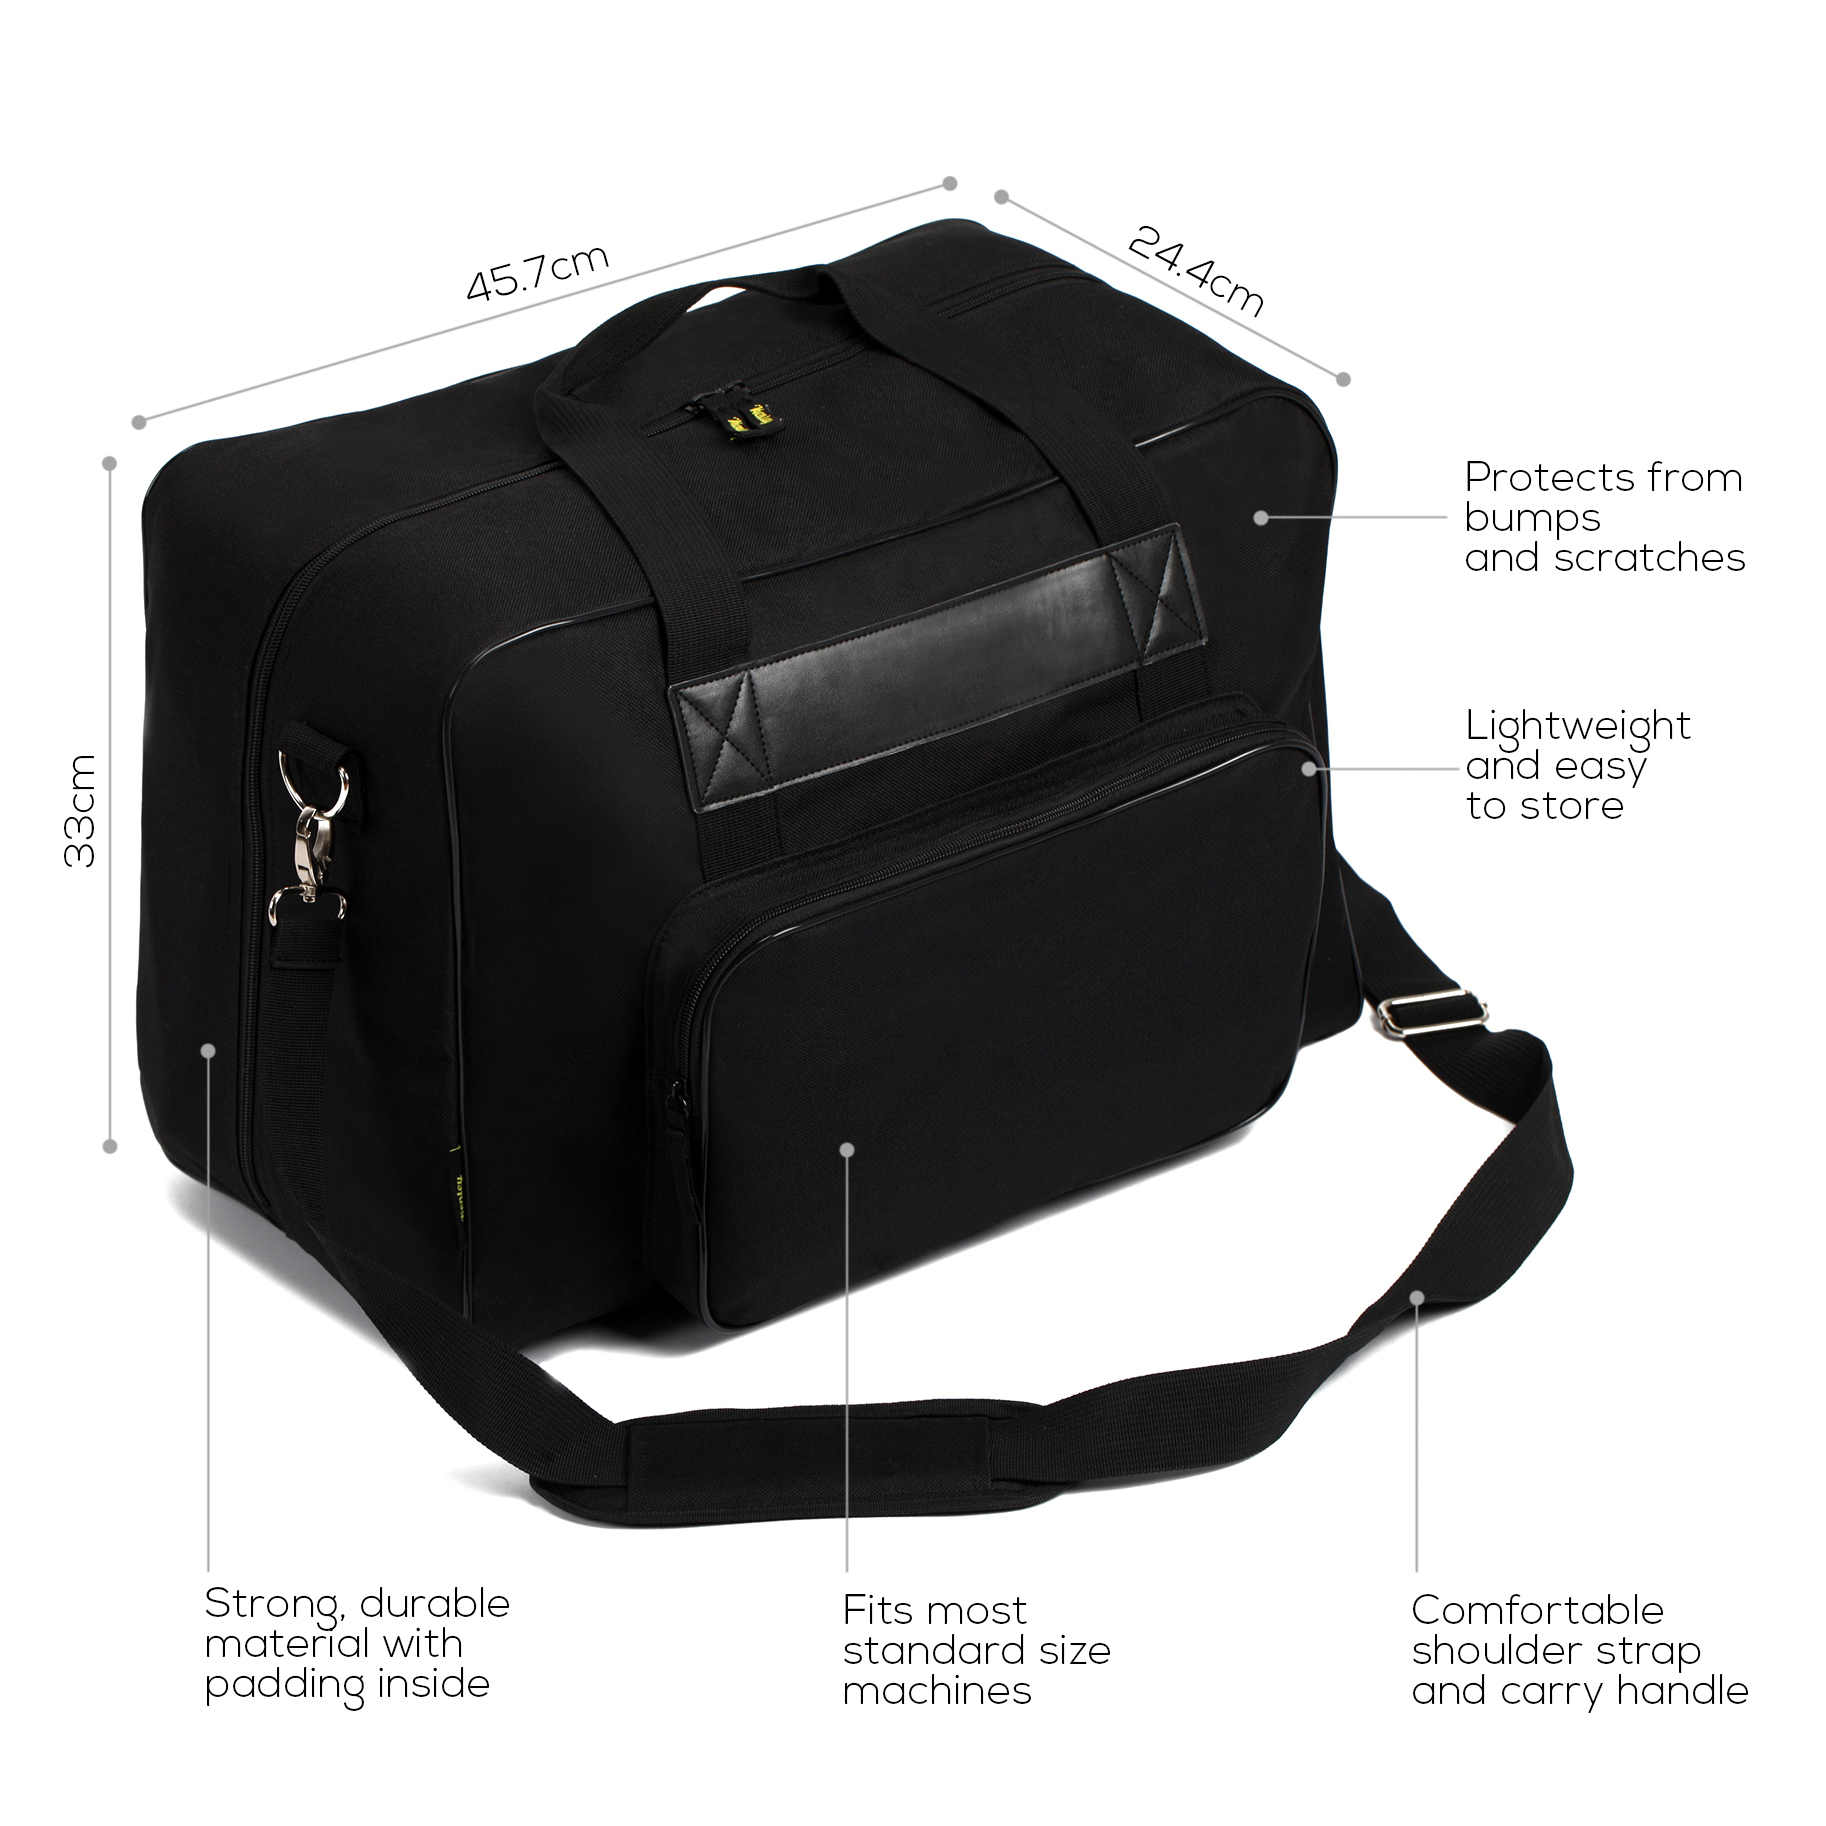 2de273b84c9c Details about Kenley Padded Sewing Machine Tote Bag Carrying Case fits  Singer Brother Janome